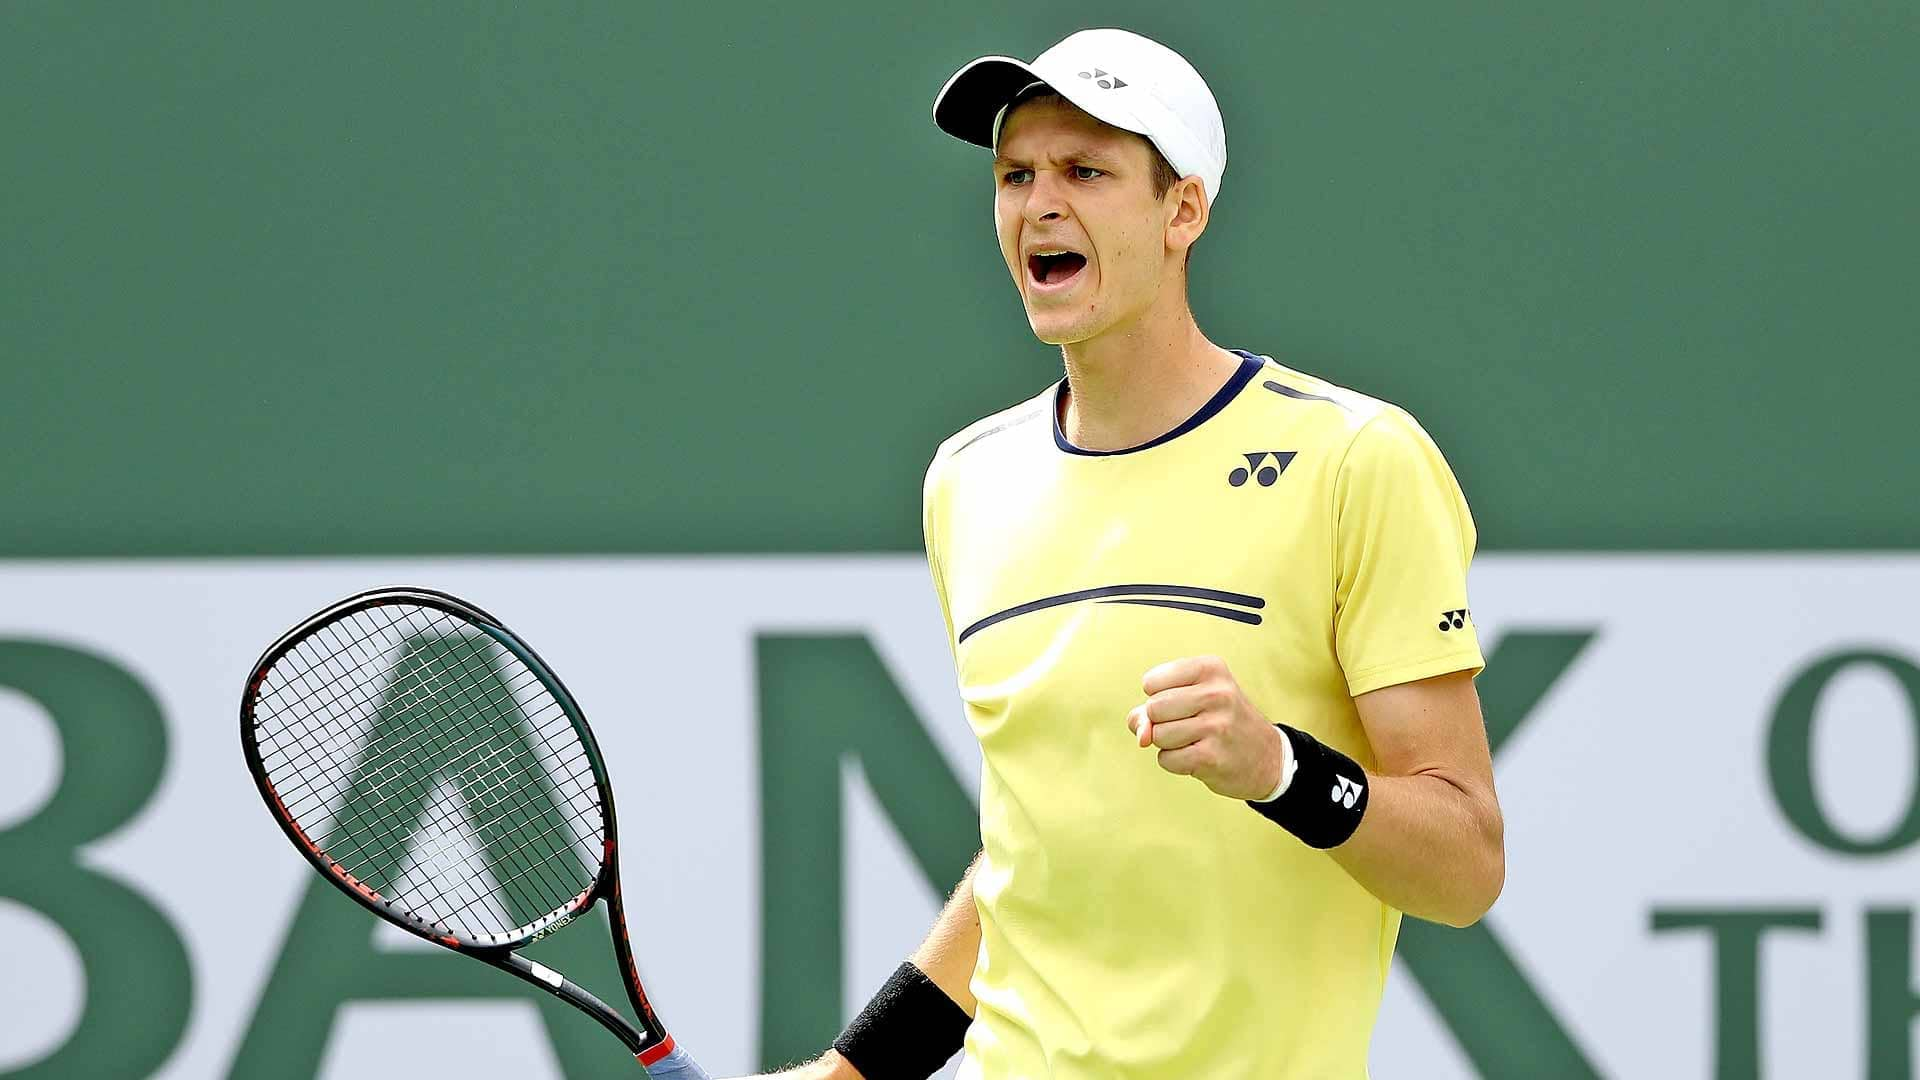 <a href='https://www.atptour.com/en/players/hubert-hurkacz/hb71/overview'>Hubert Hurkacz</a> celebrates a point during his third-round win at the 2019 <a href='https://www.atptour.com/en/tournaments/indian-wells/404/overview'>BNP Paribas Open</a>